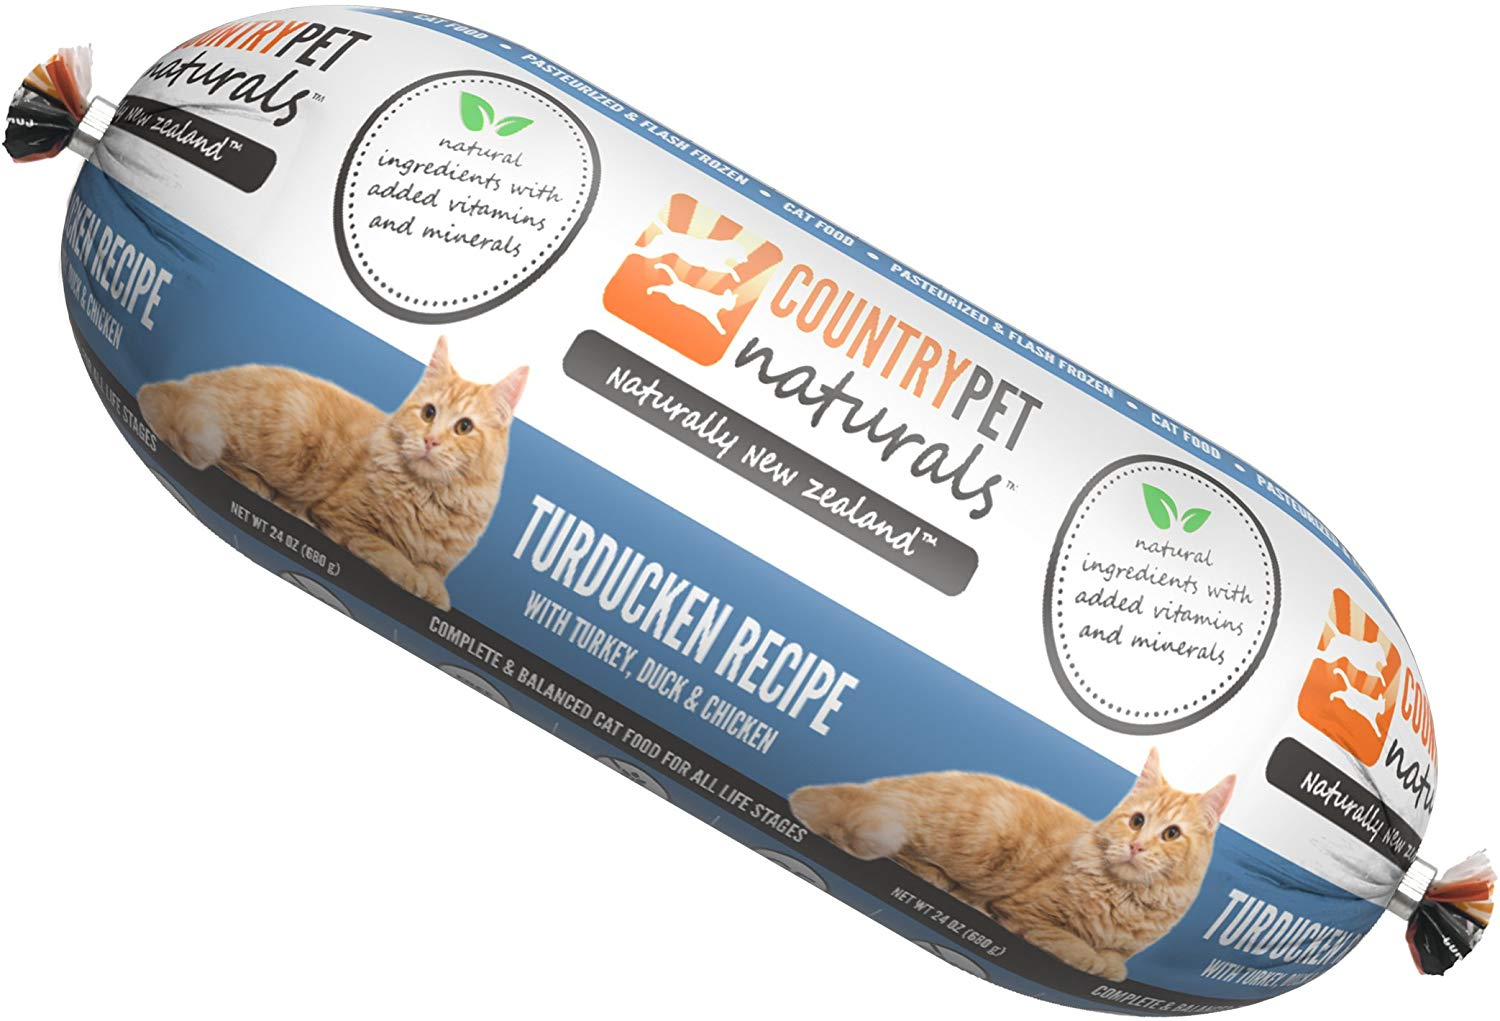 CountryPet Catfood